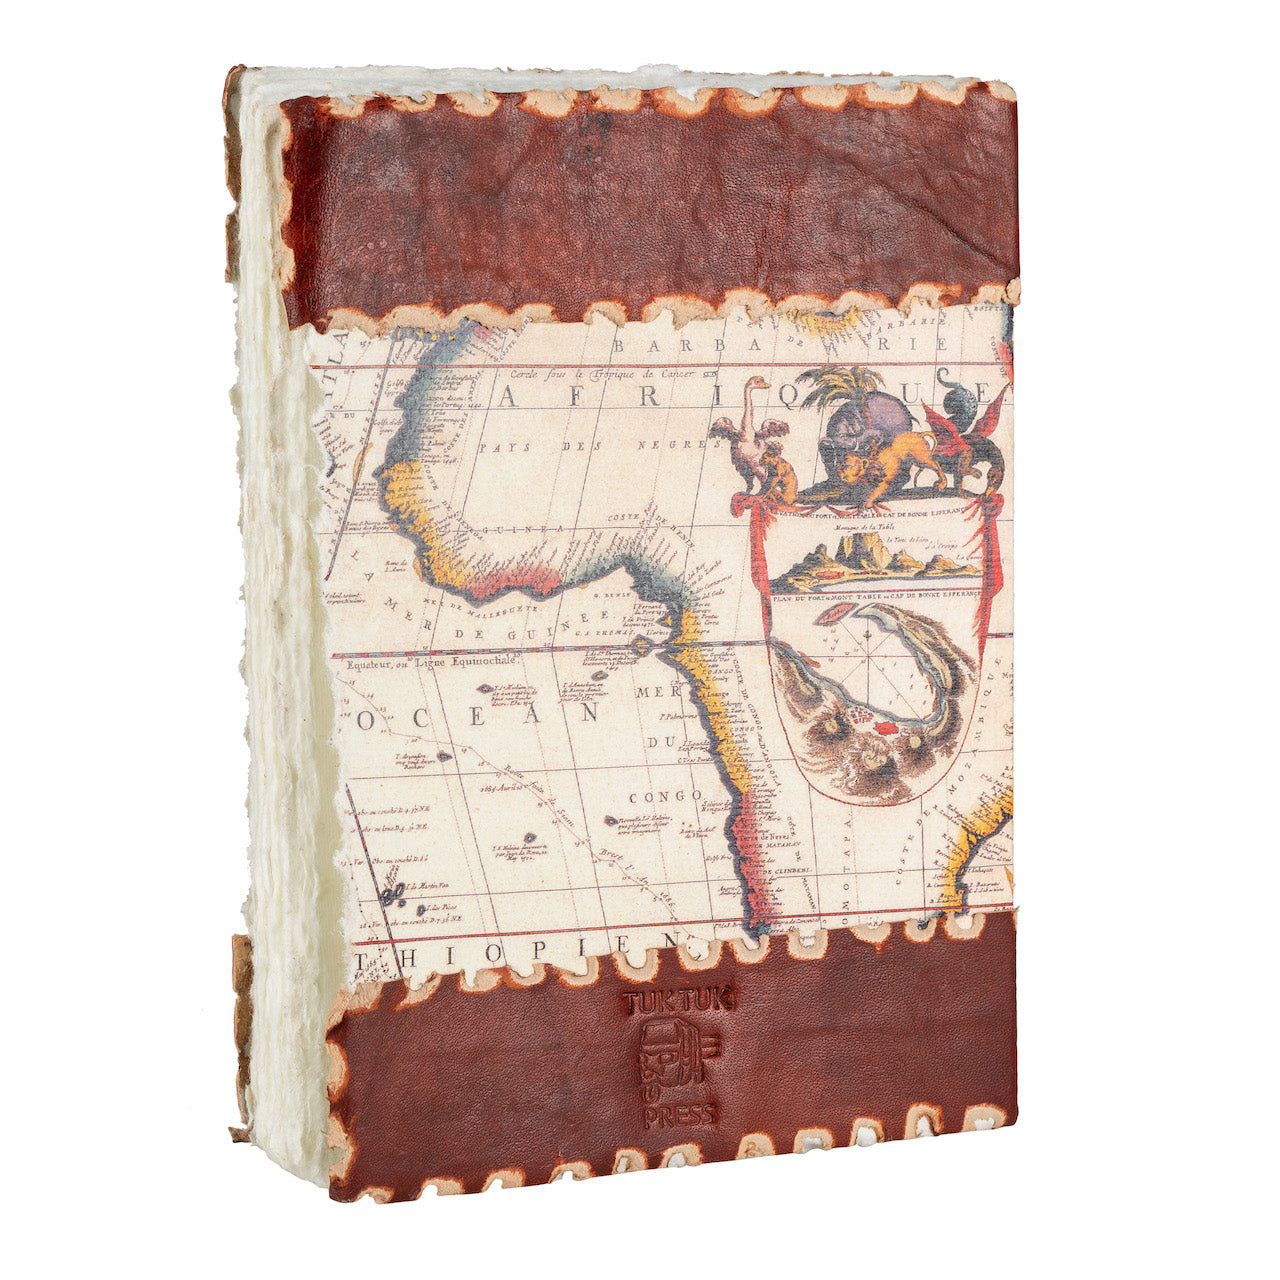 Tuk Tuk Press® Handmade Leather Journal with 144 Hand Pulled Cotton Pages, Vintage World Map